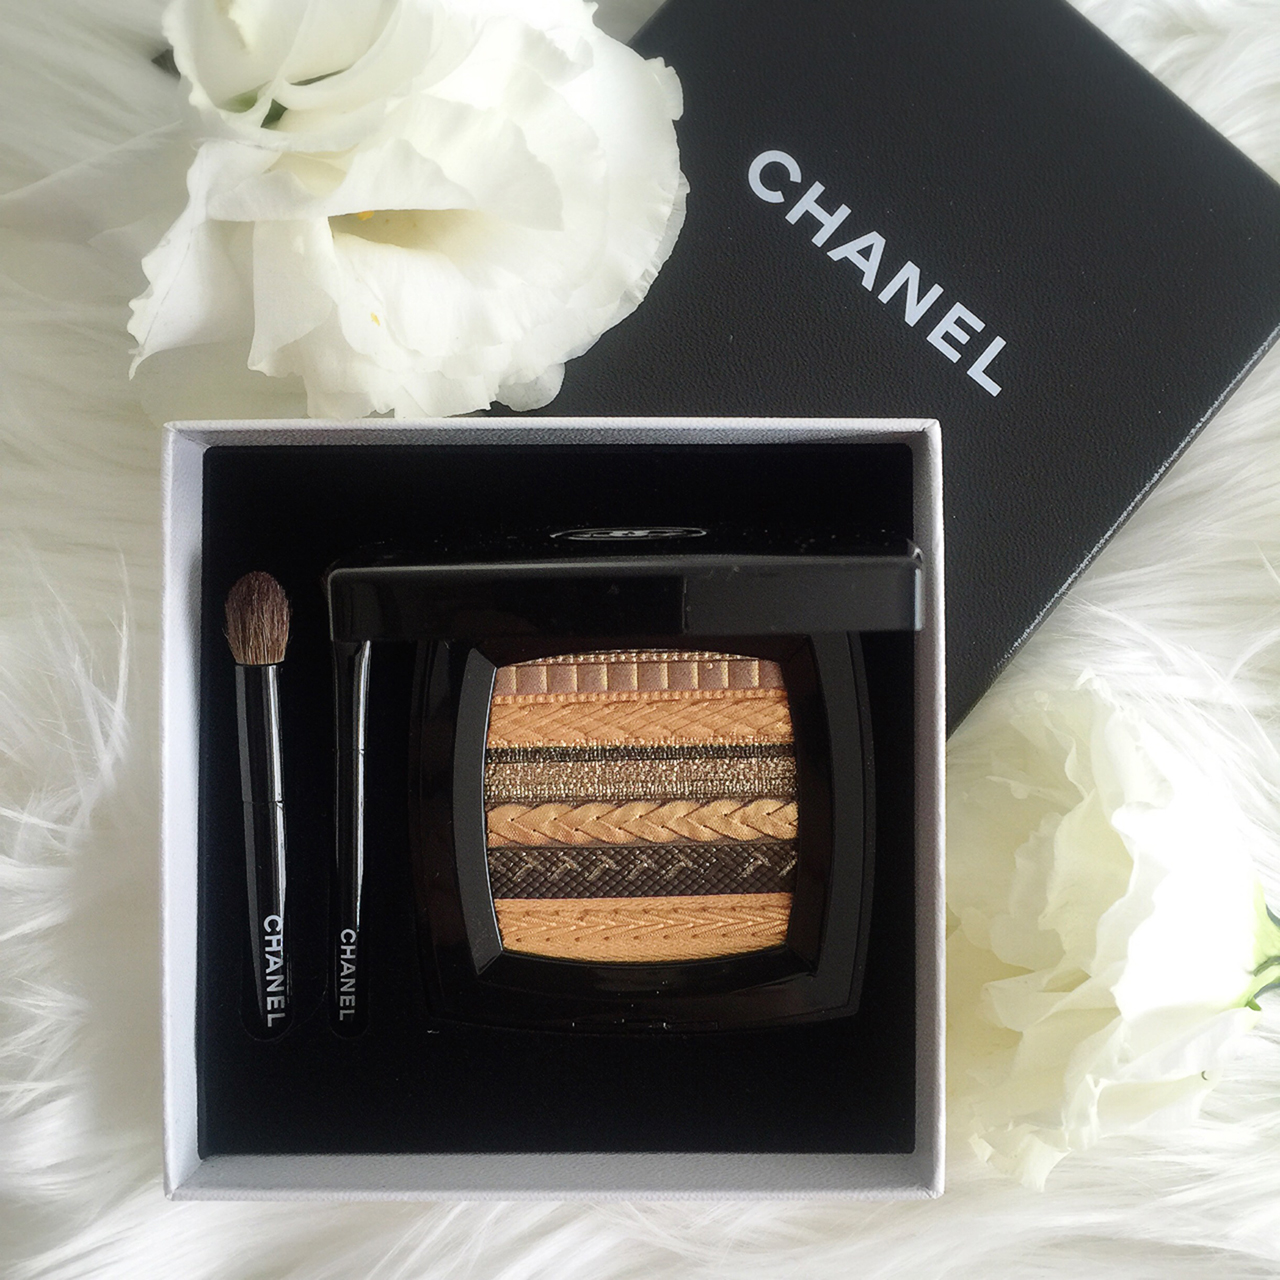 Chanel Ombres Lamees for Holiday 2016